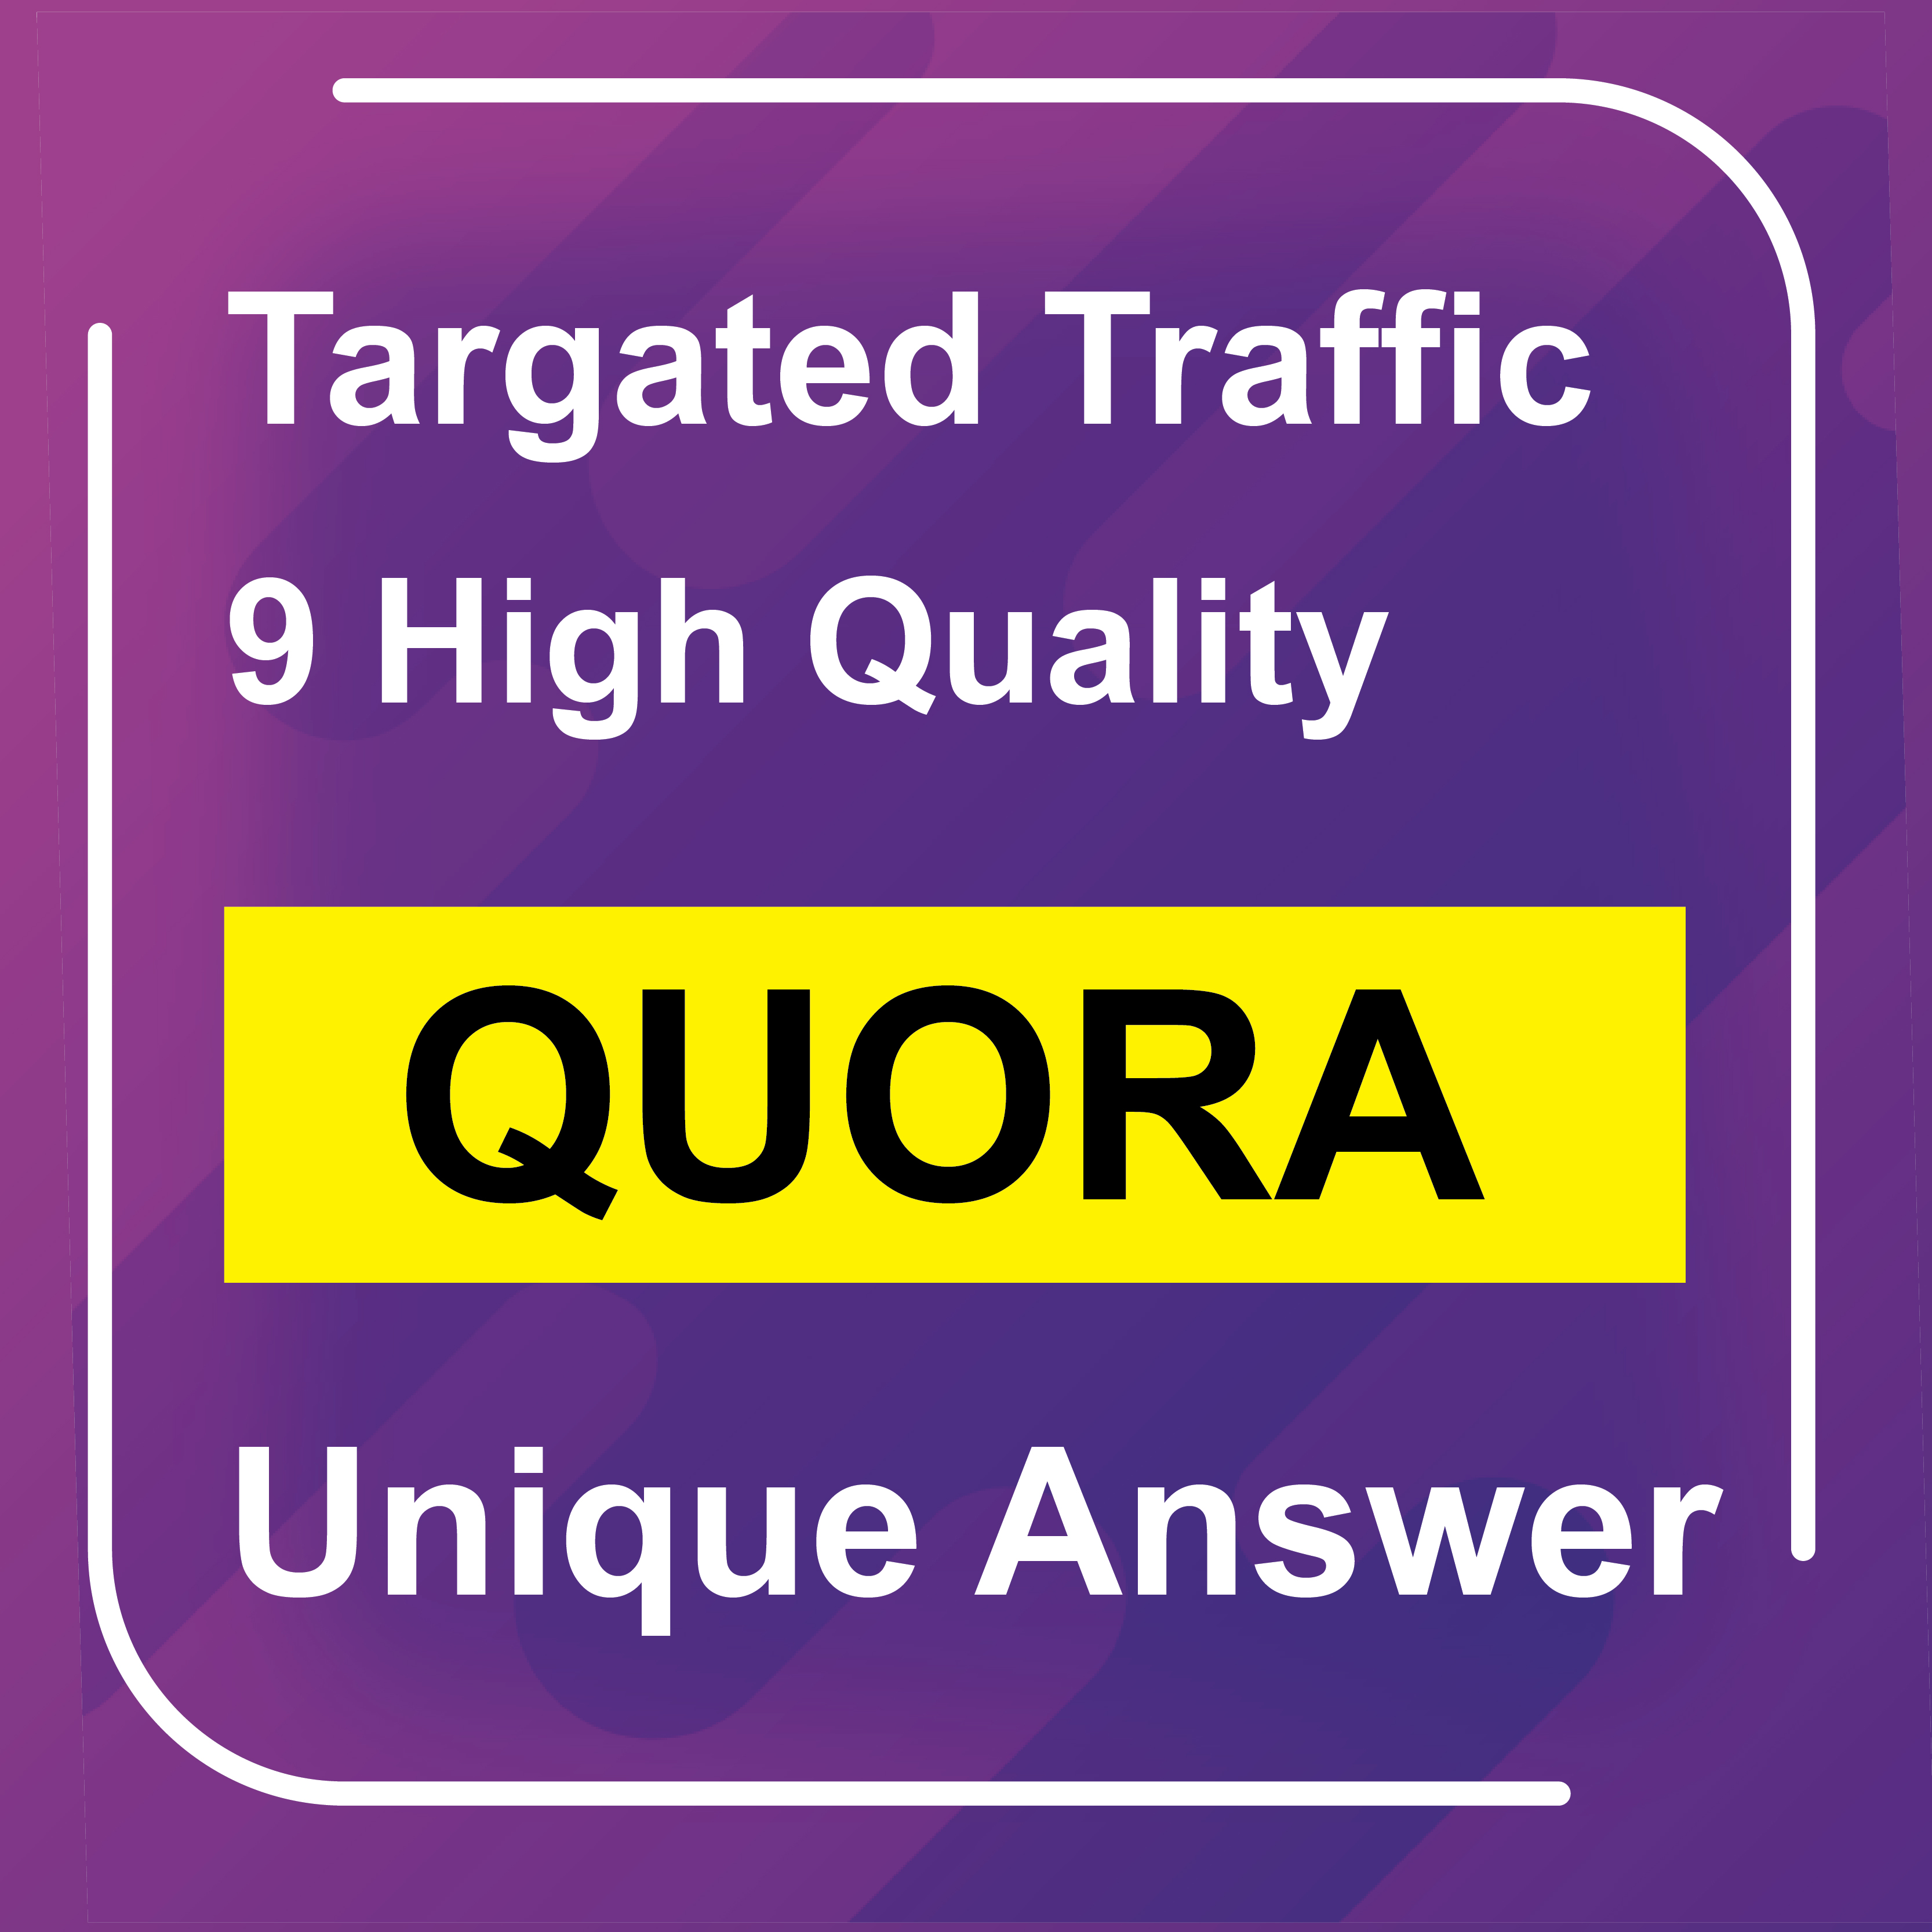 Targeted Traffic by Posting 9 High Quality Quora Answer With Your Keyword & URL